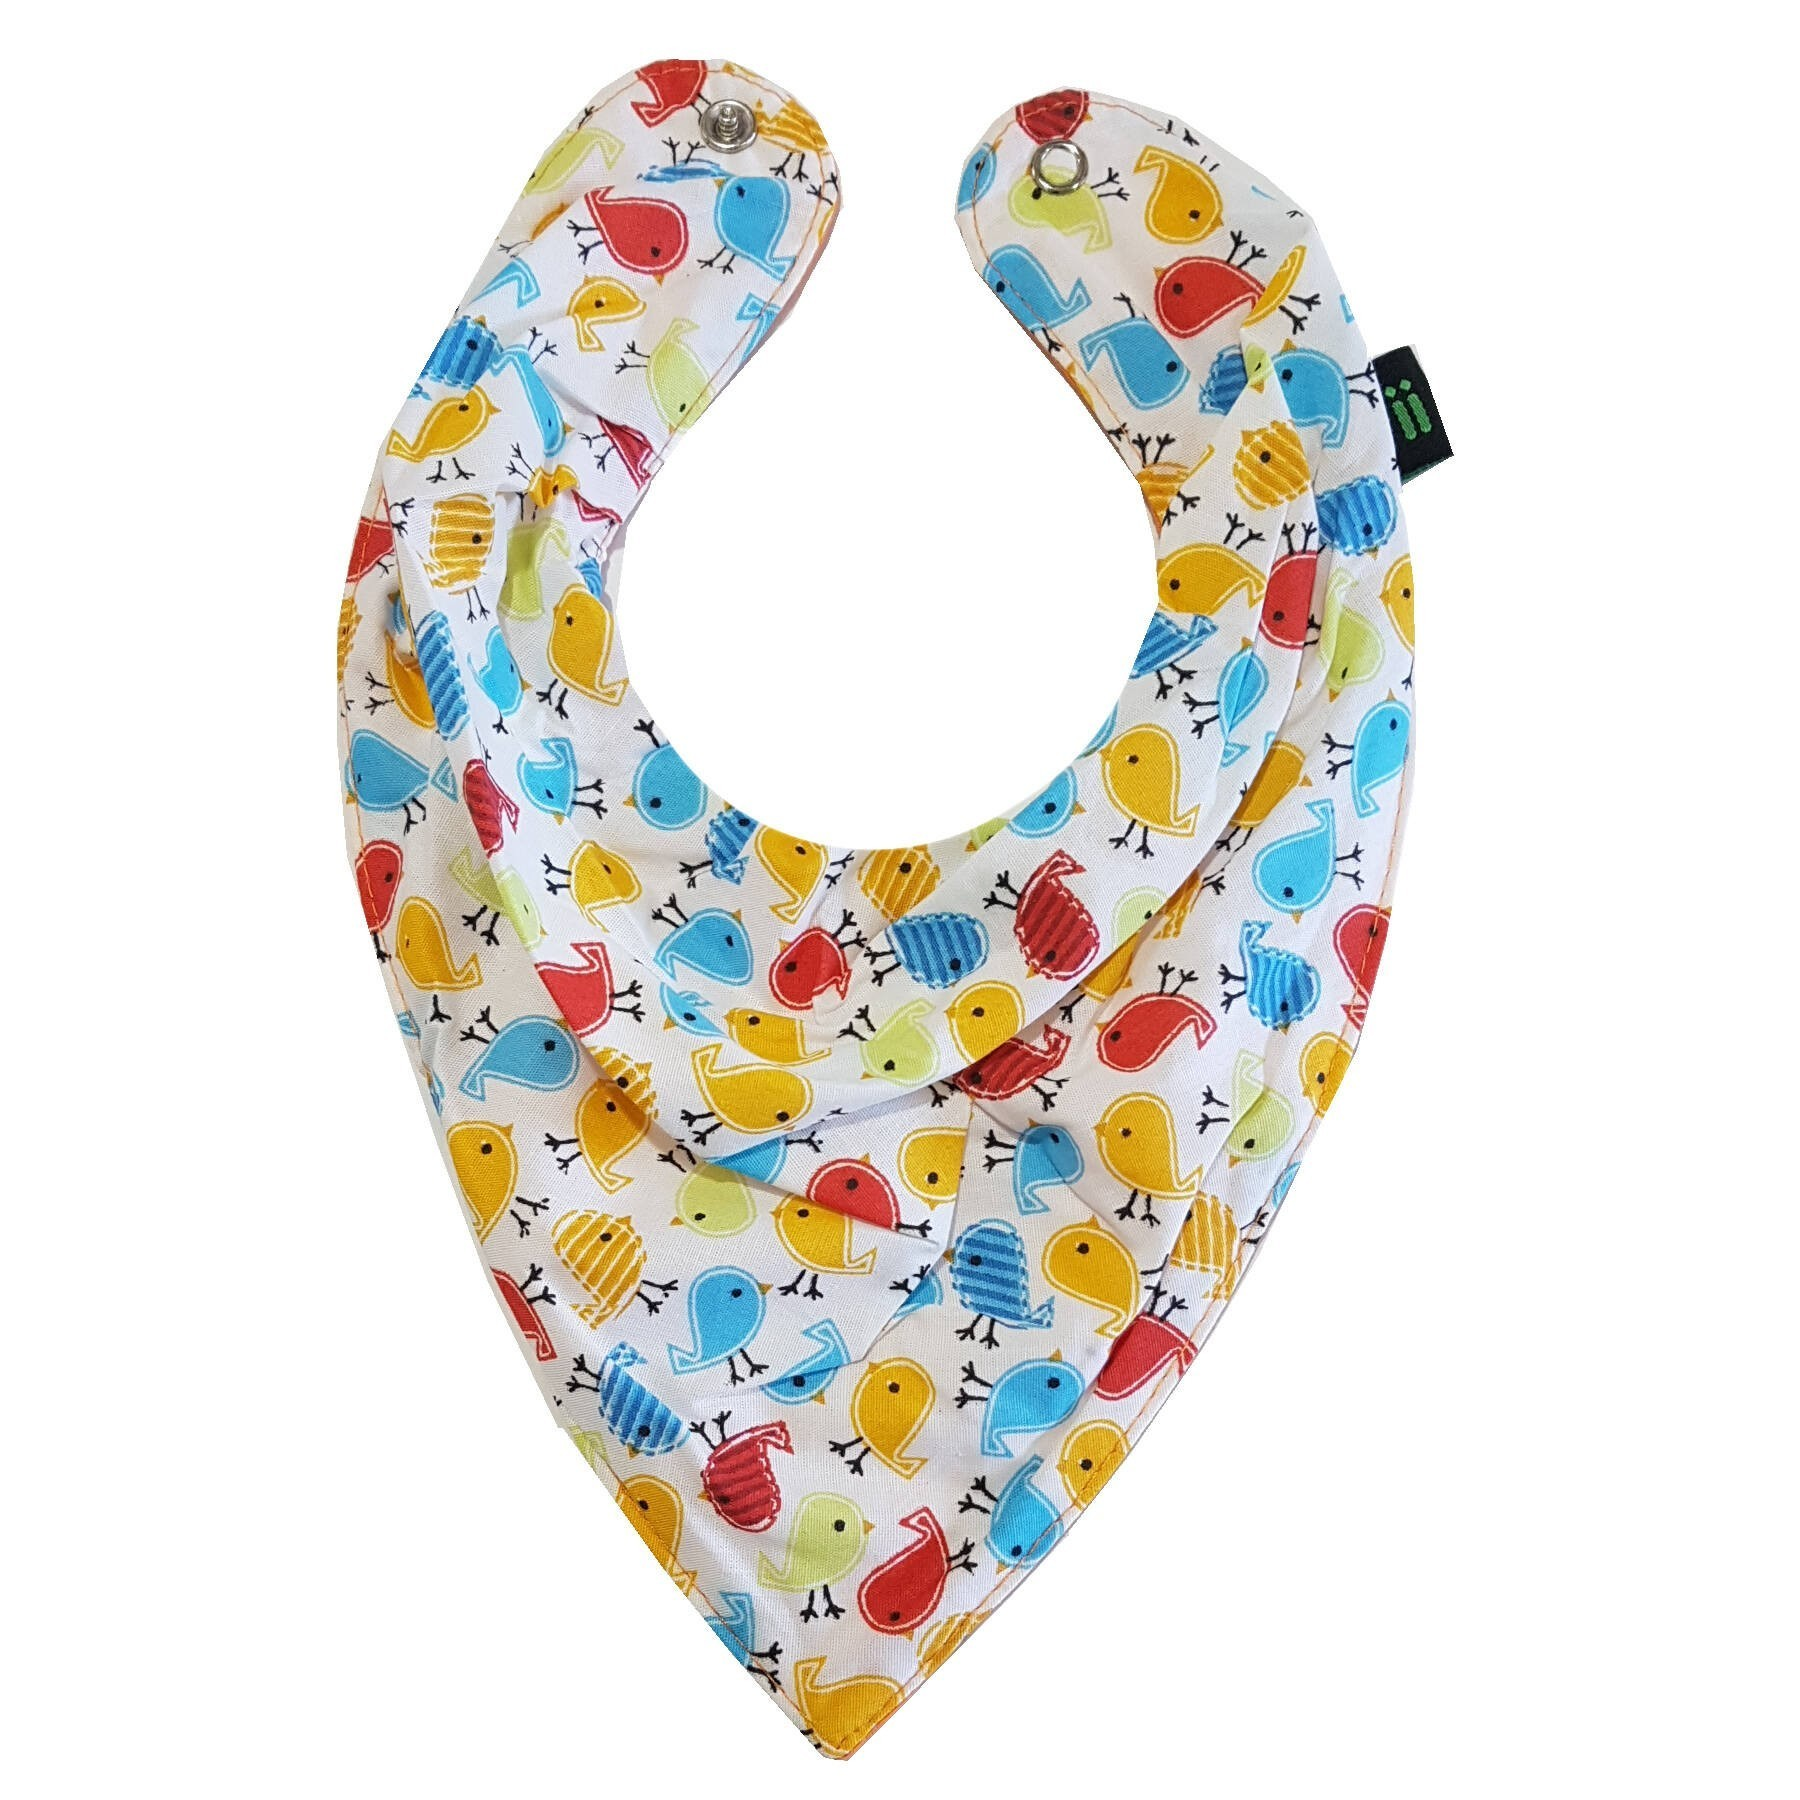 Kit Babador Bandana Little Bird Oliva Gumii